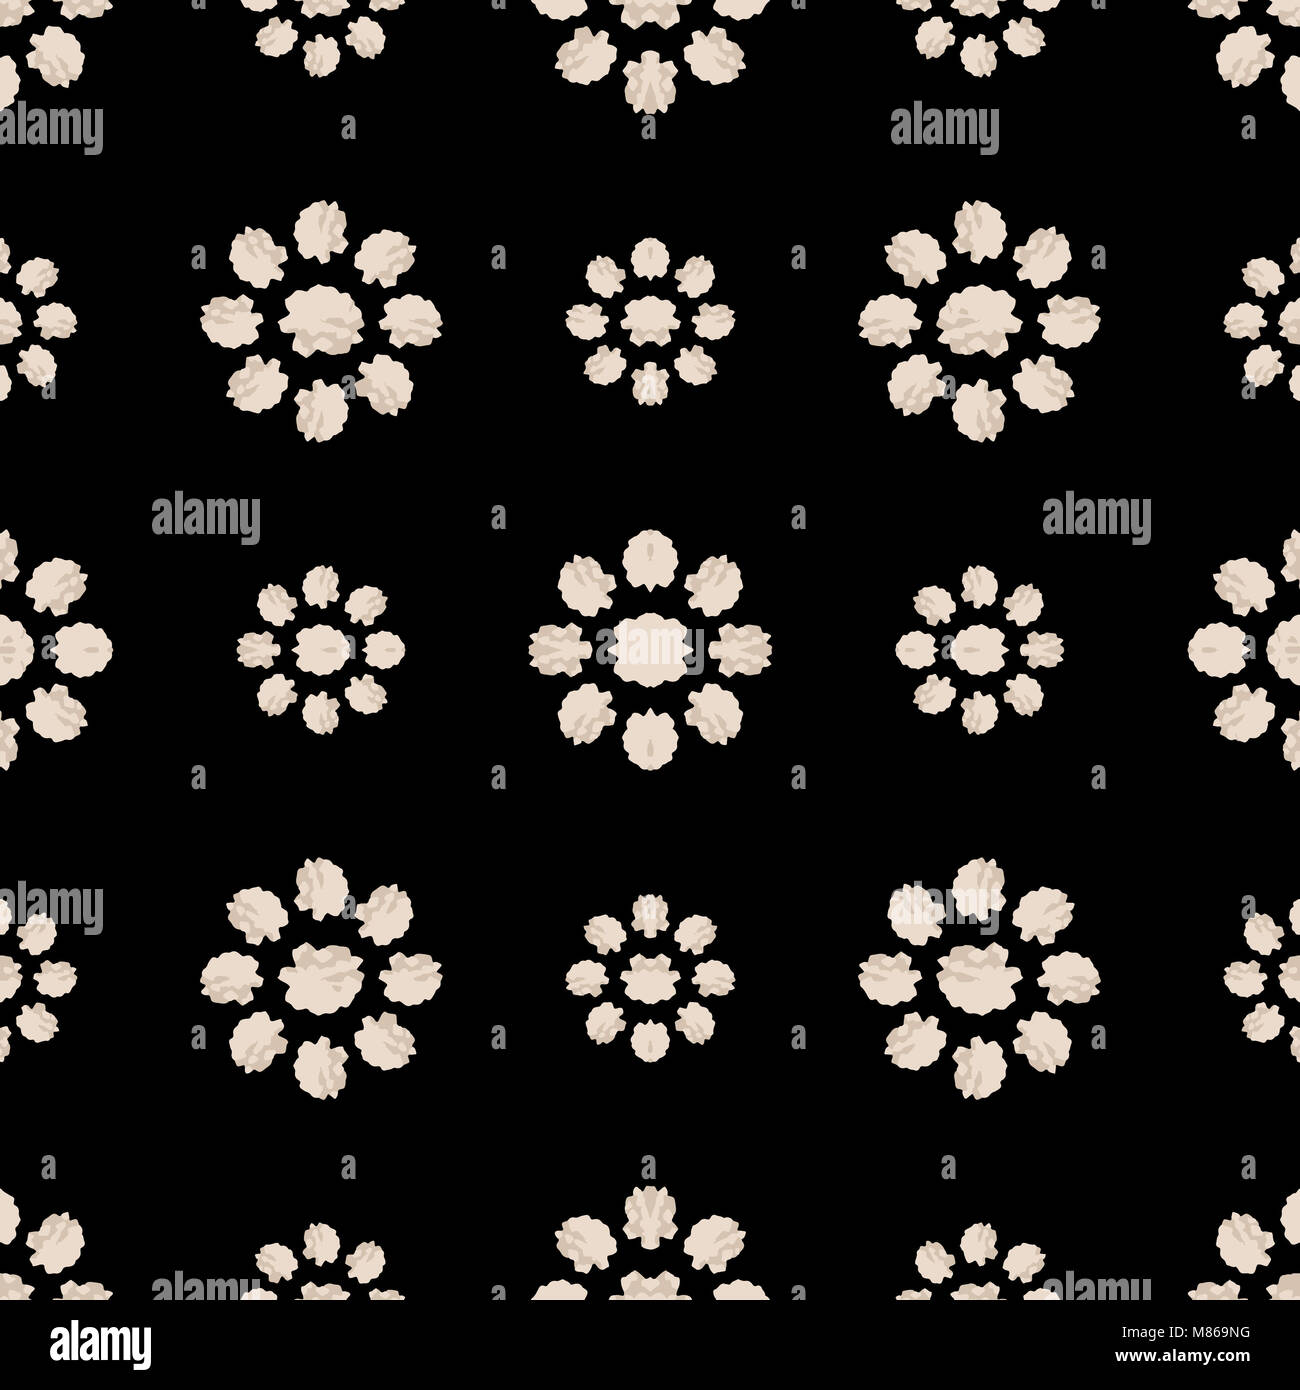 Digital art stilyzed floral motif seamless pattern design in black and white colors Stock Photo